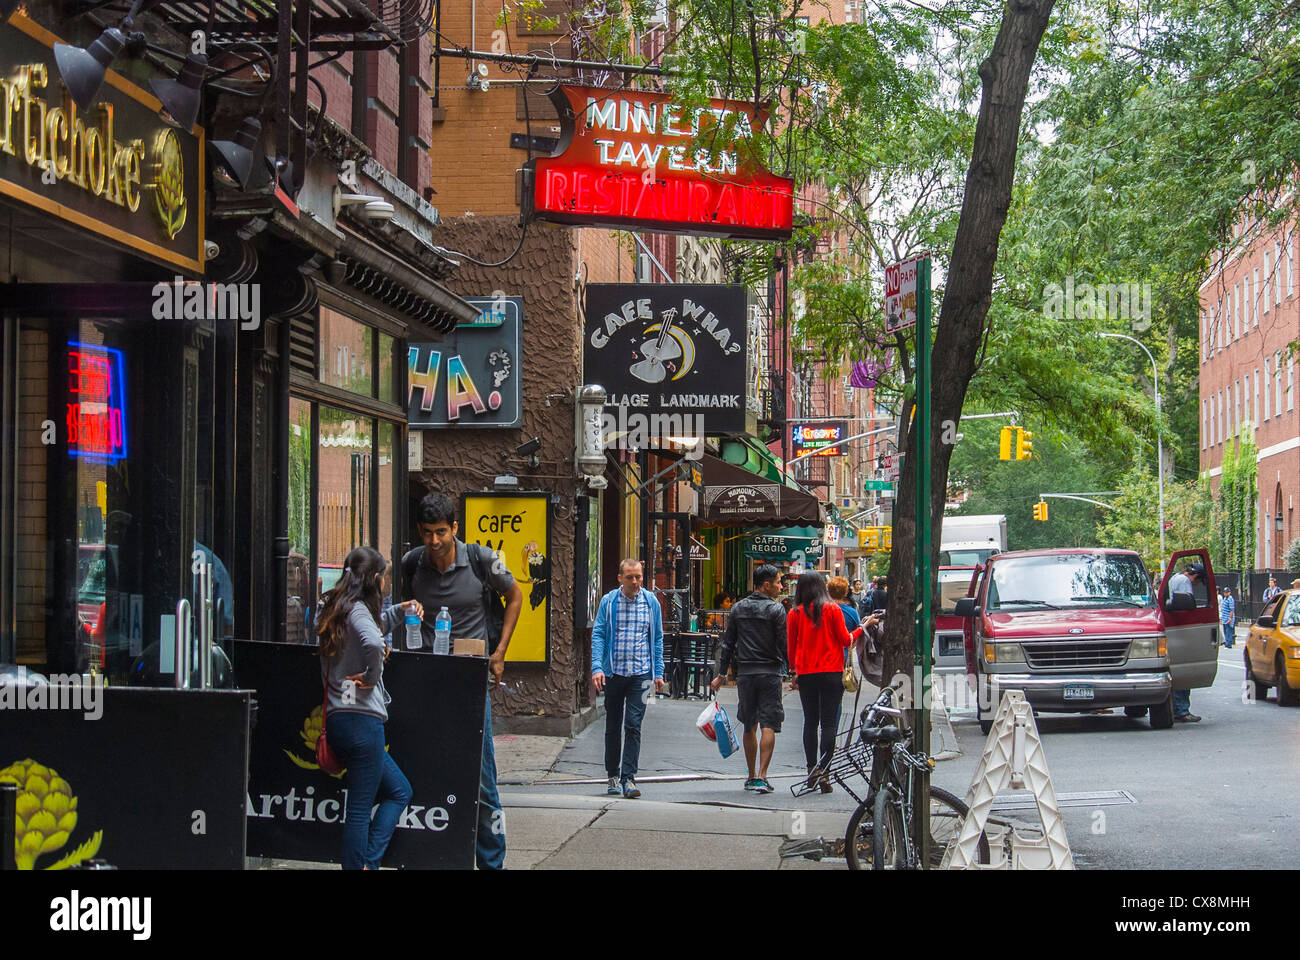 new york ny usa west village shopping street scenes signs